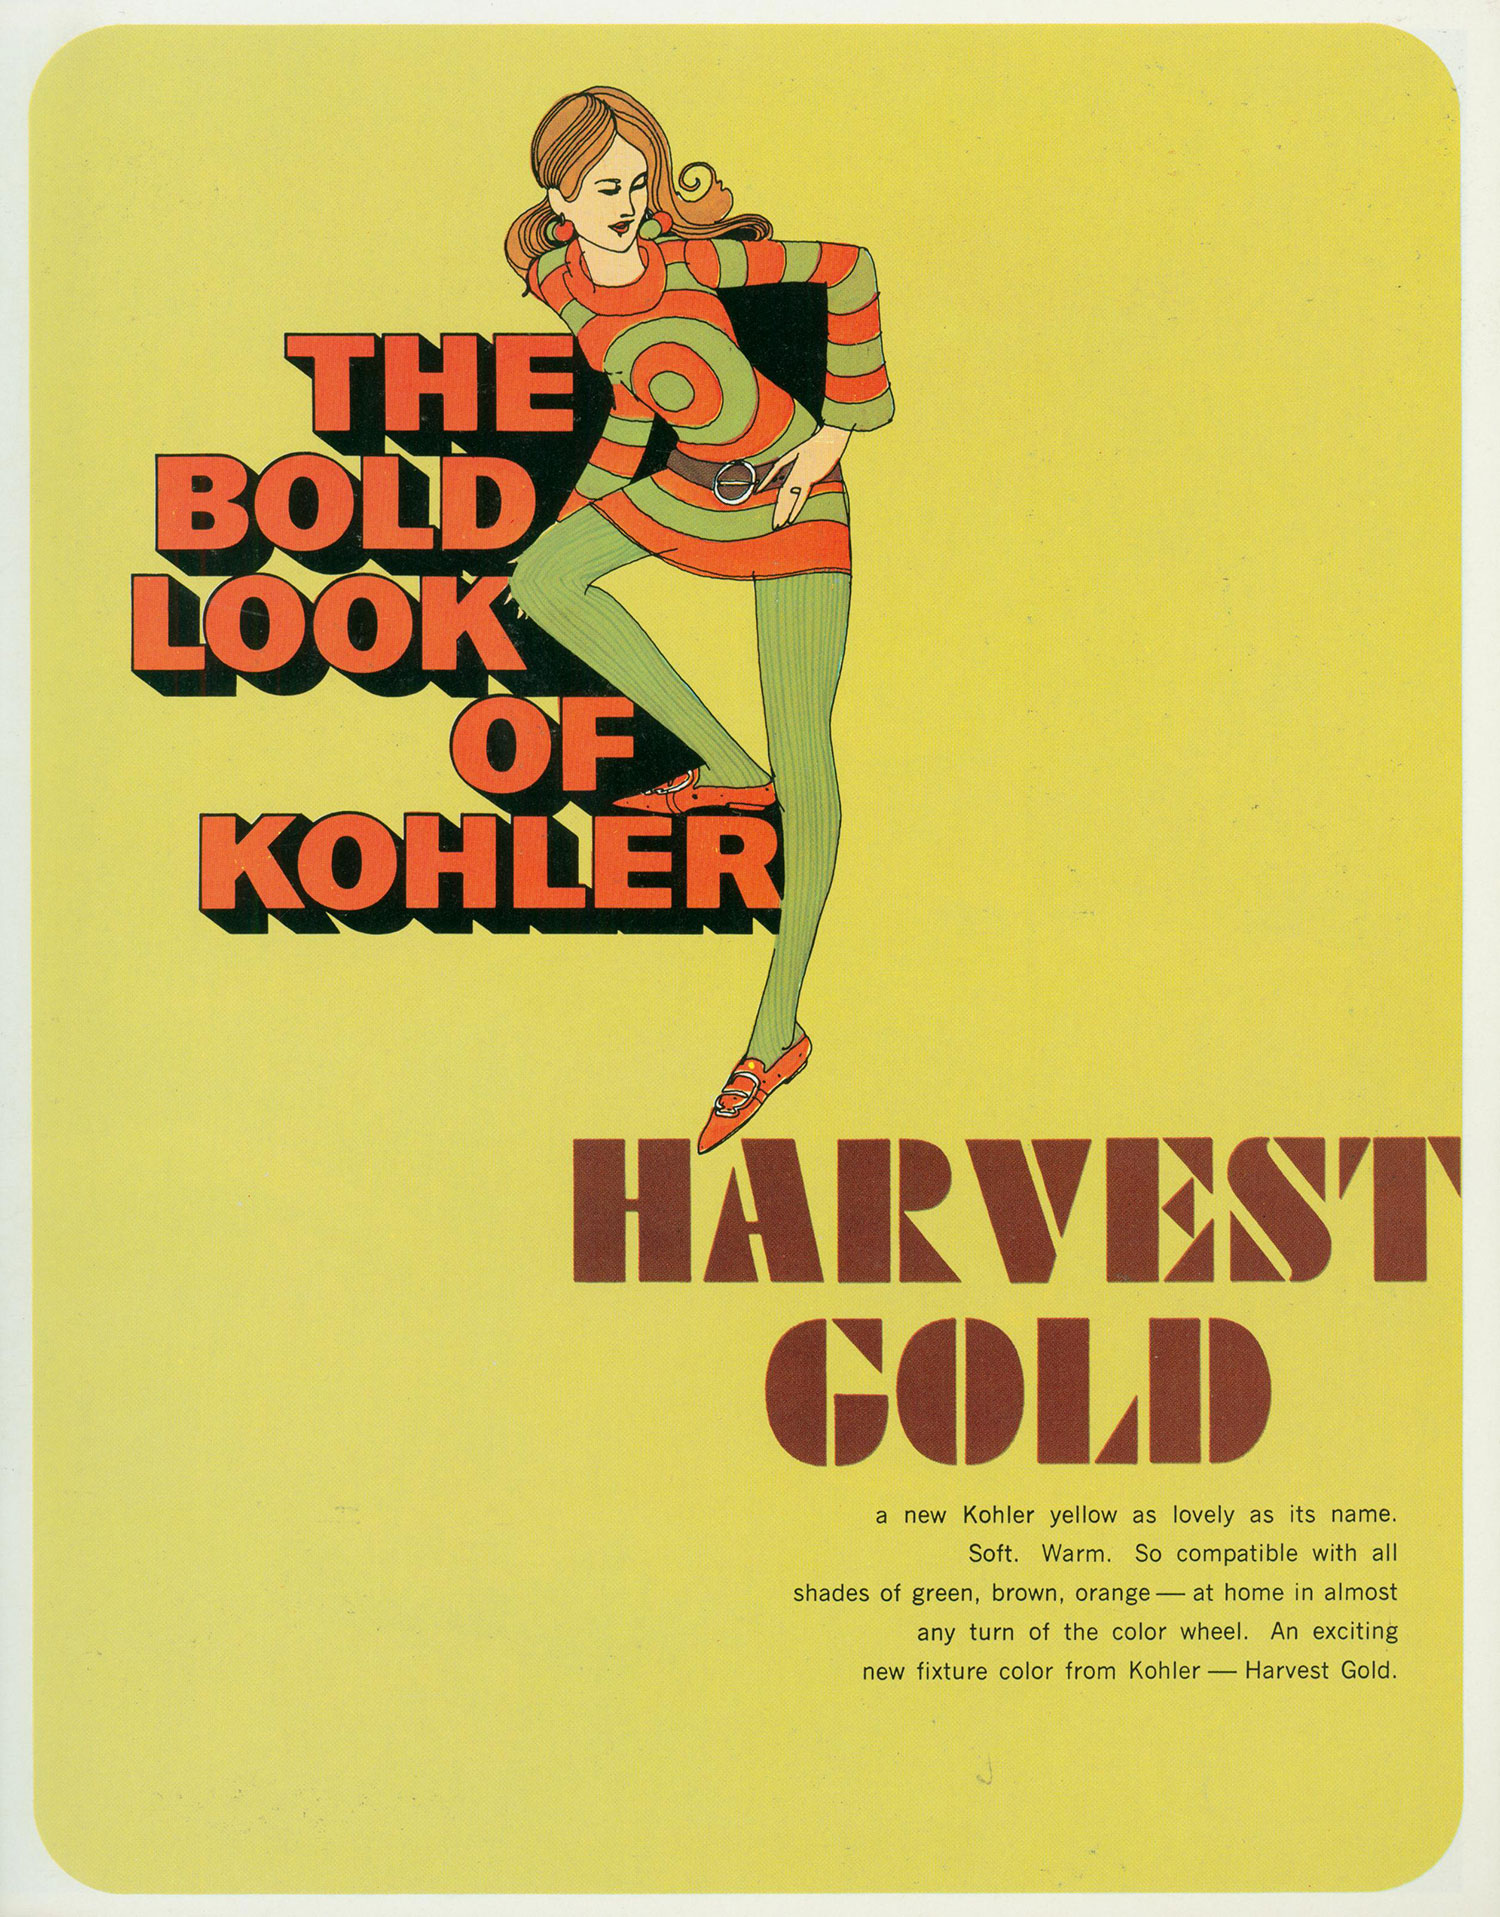 The Bold Look Of Kohler Harvest Gold 1969